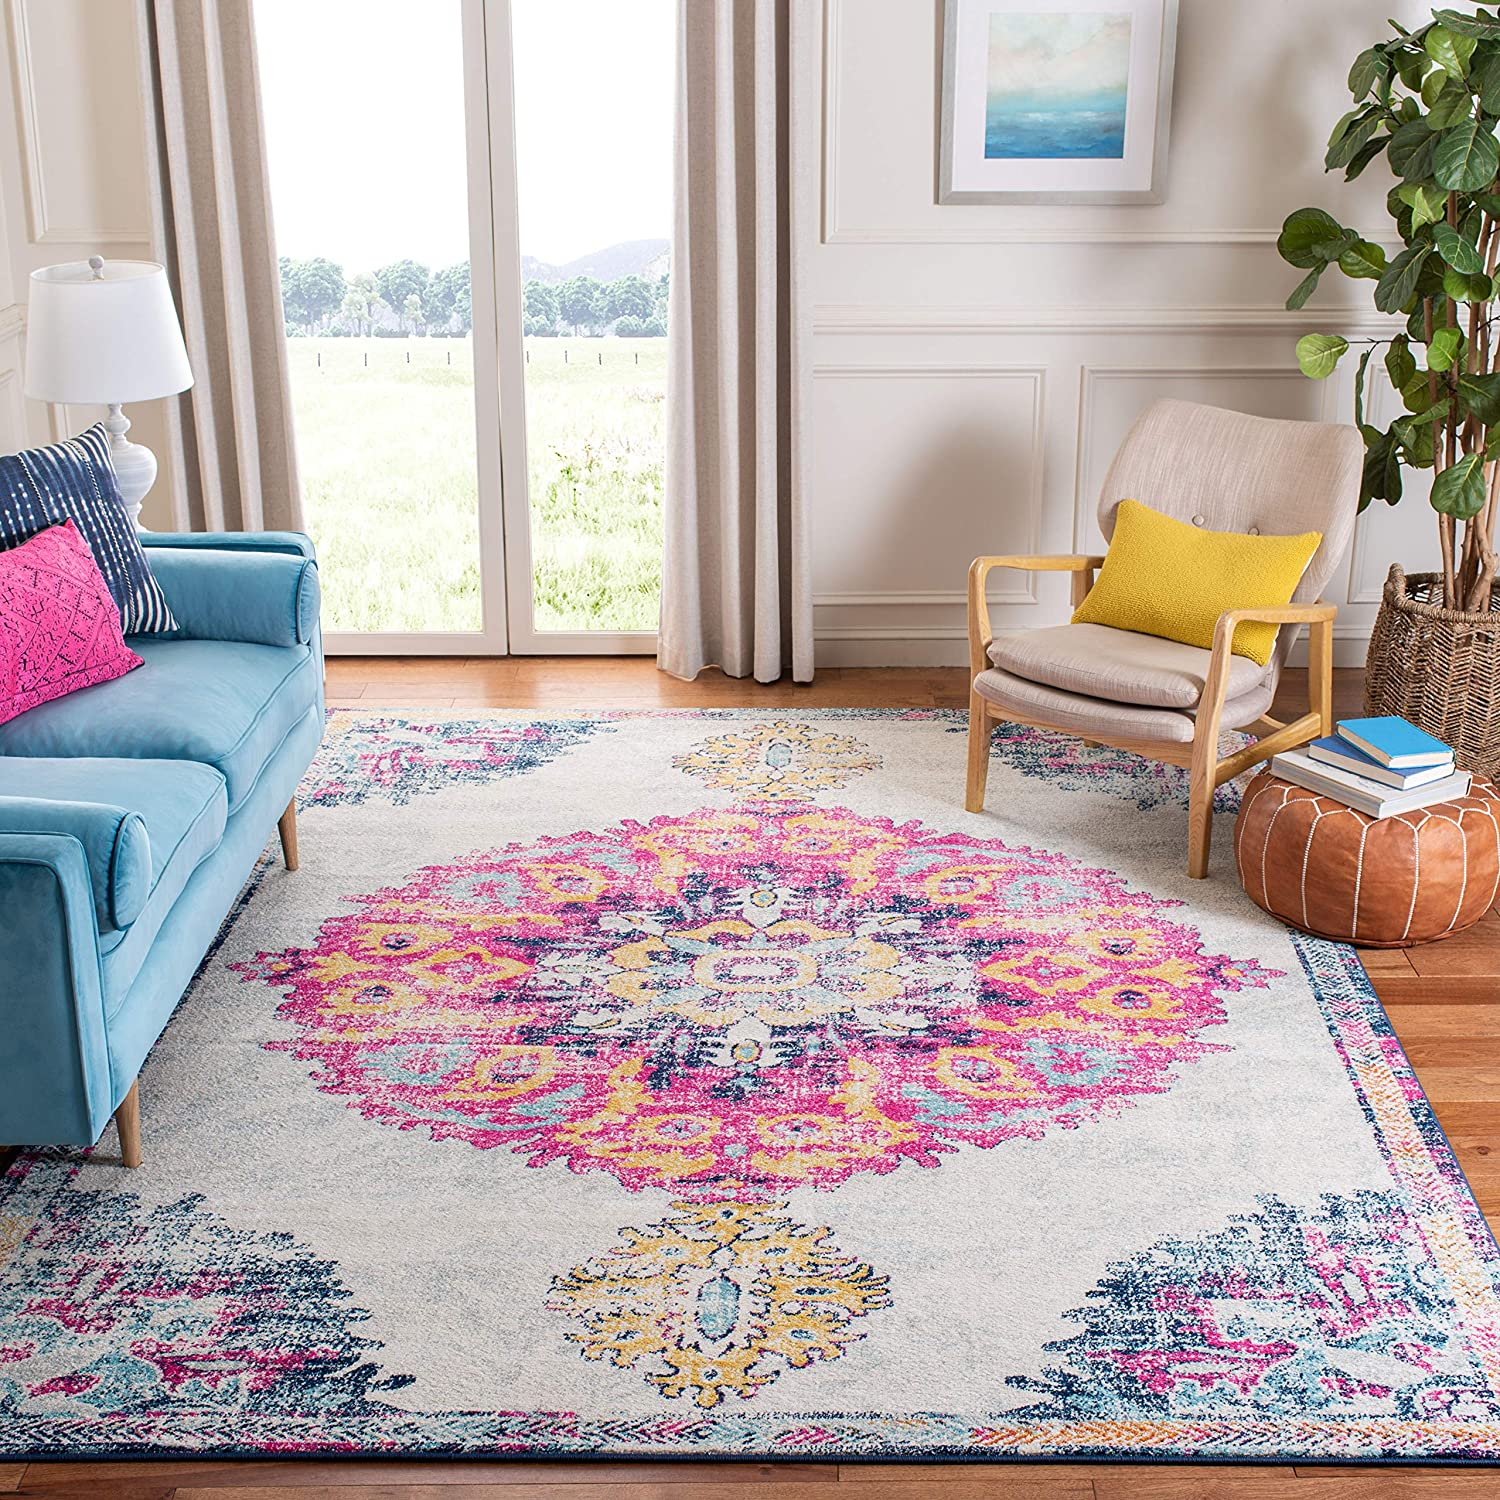 Safavieh Limited price sale Madison Collection OFFicial shop MAD913A Distressed Medallion Non-She